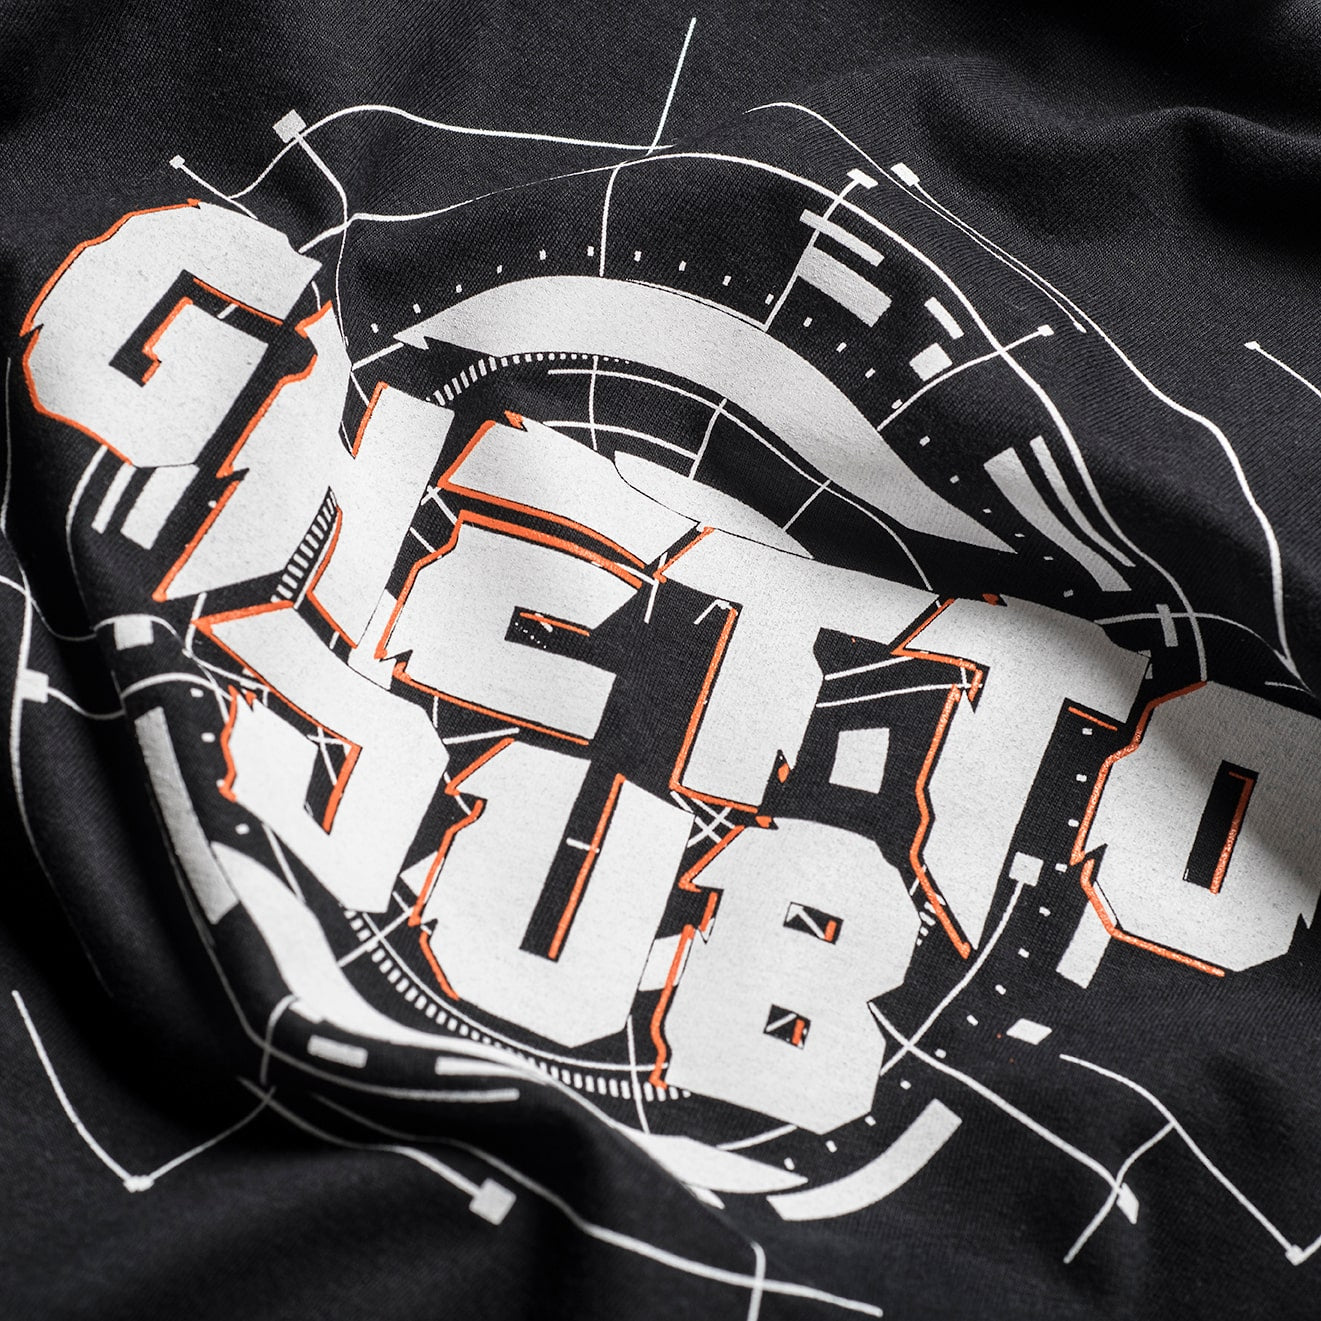 Ghetto Dub Tee design